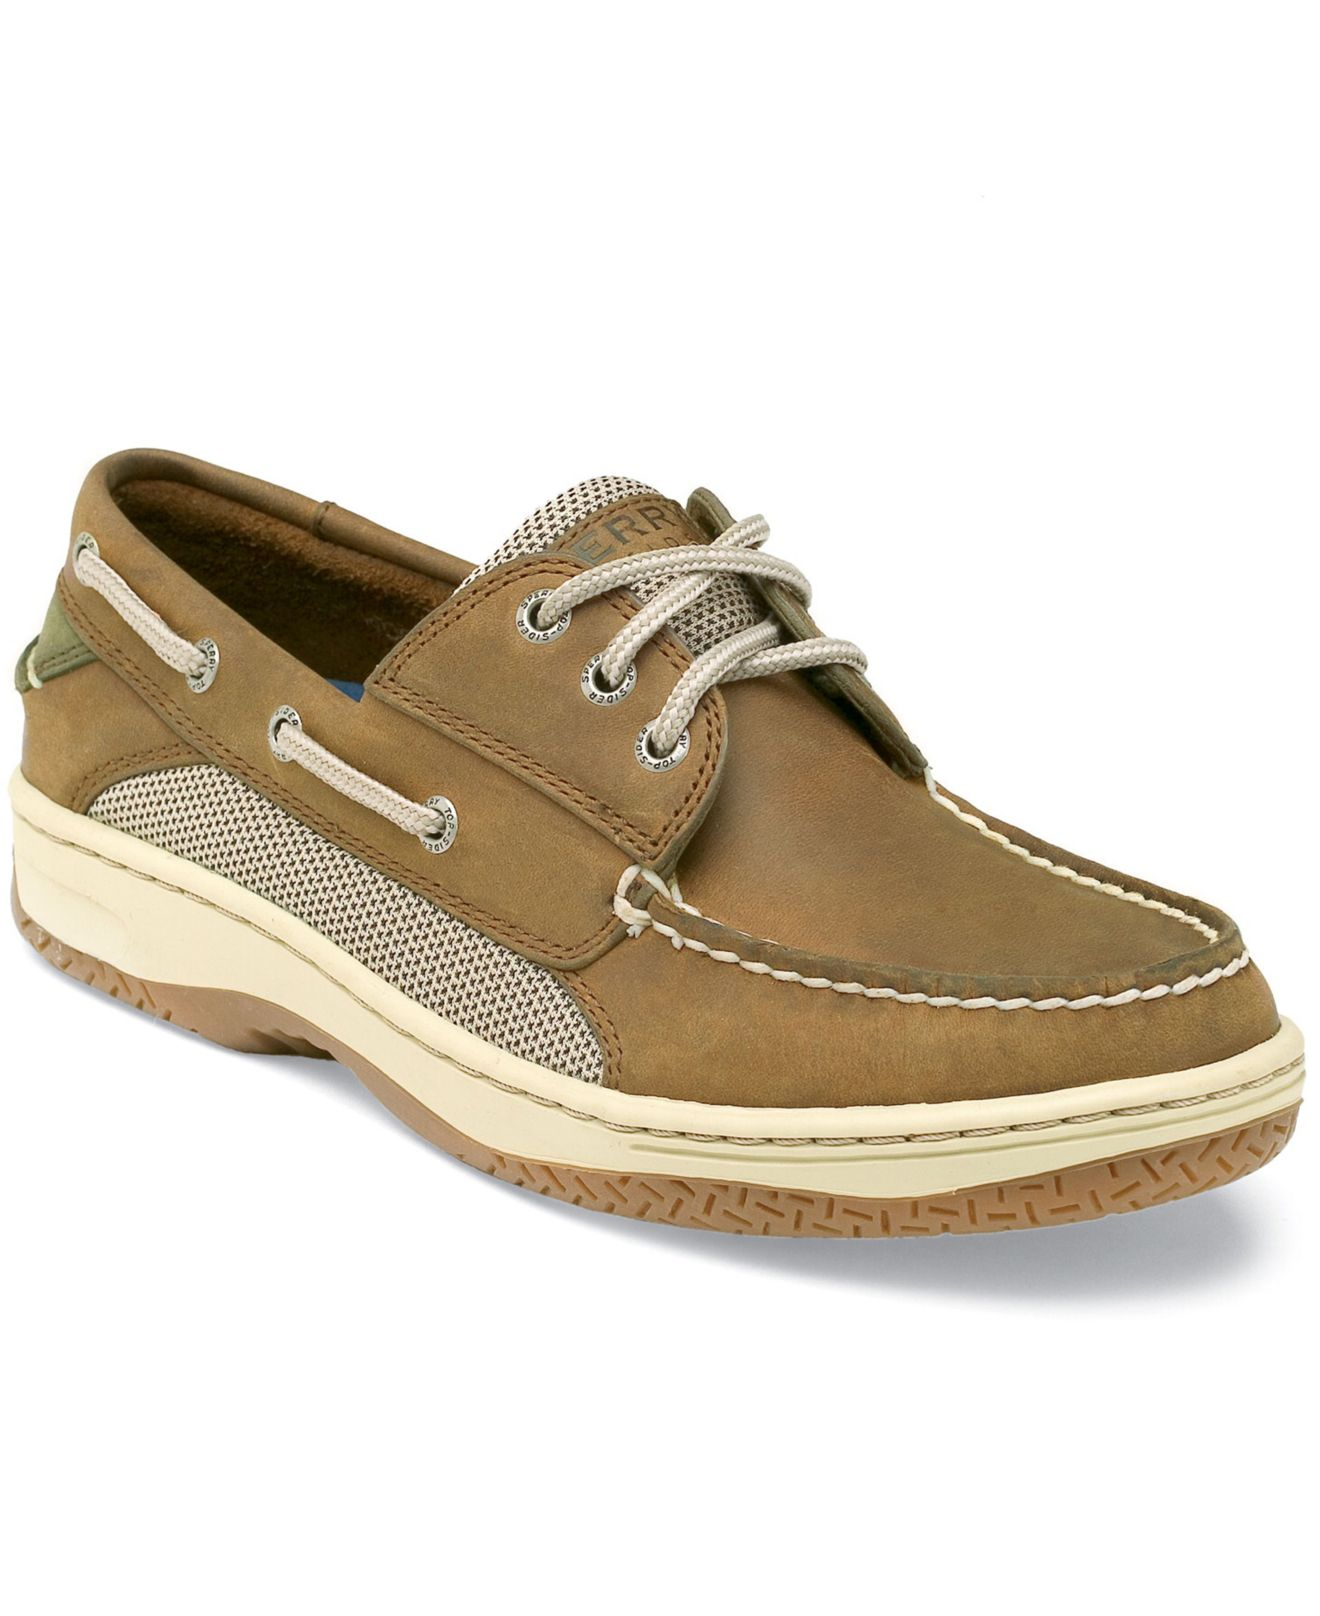 sperry top sider billfish eye boat shoes mens